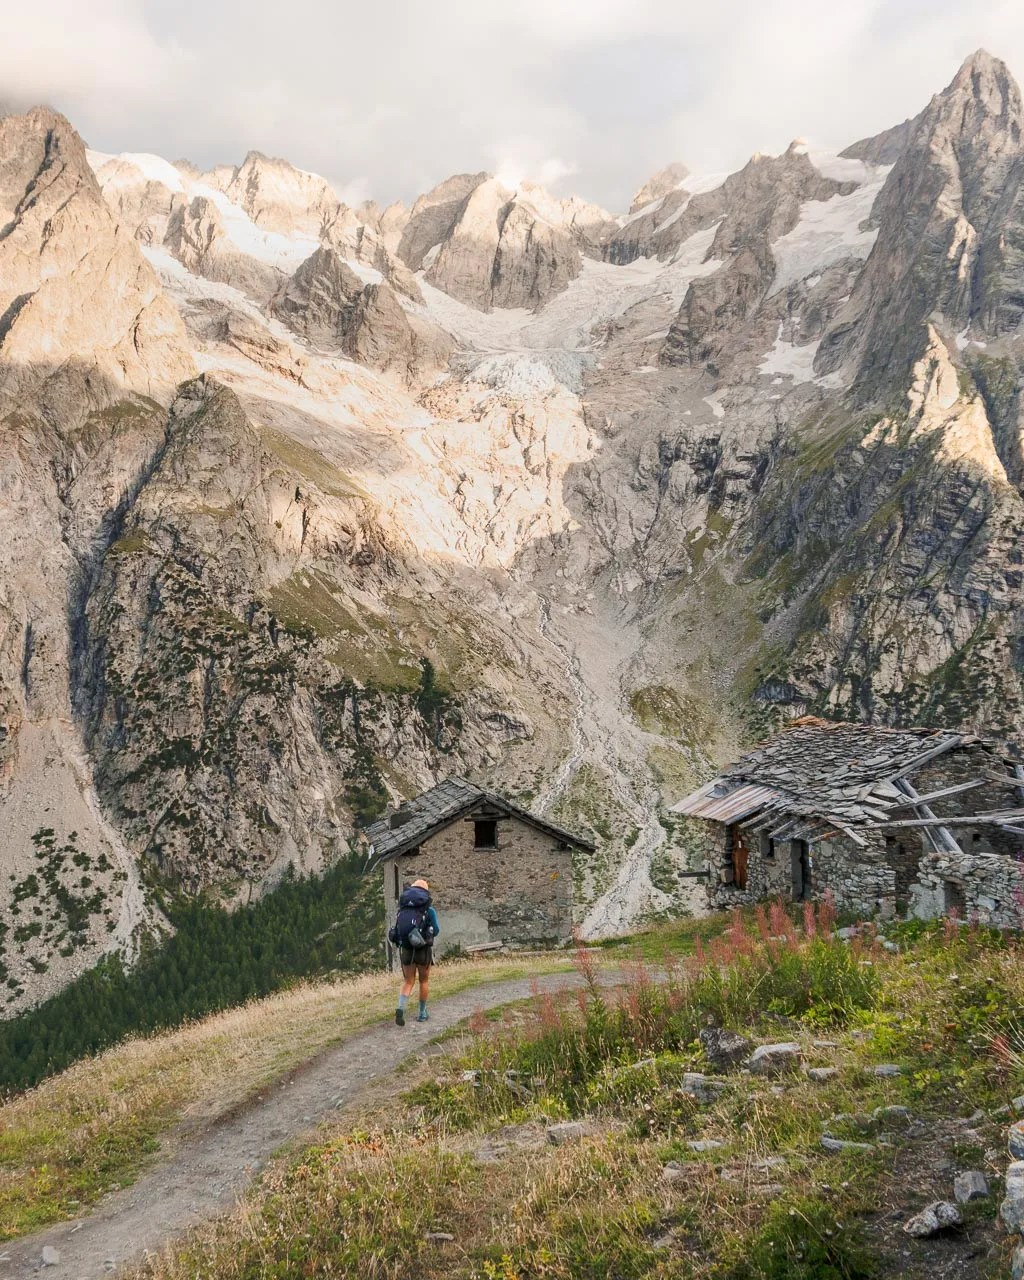 stage 6 of Tour du Mont Blanc, Italy